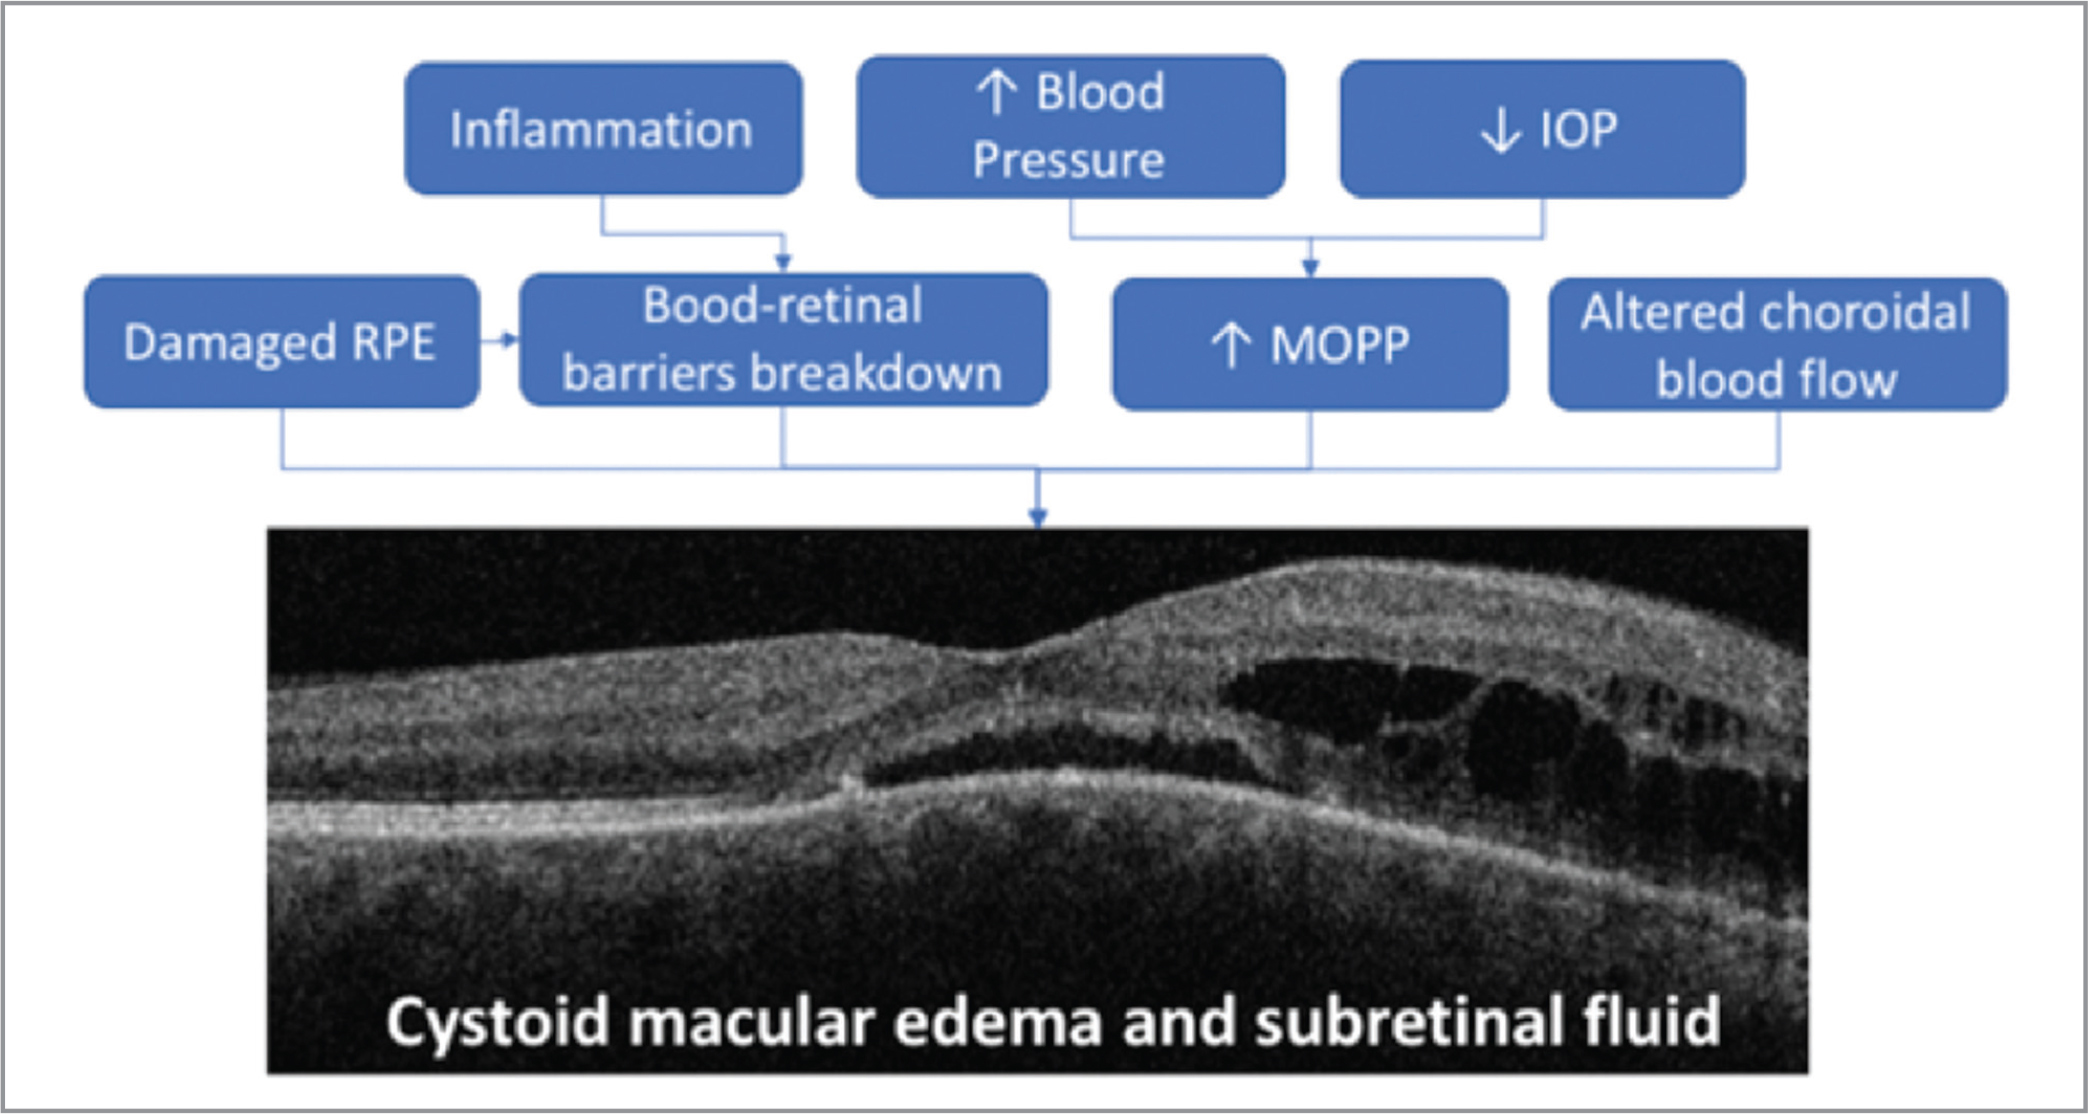 Pathogenesis of macular exudative phenomena associated with circumscribed choroidal hemangioma. RPE = retinal pigment epithelium; MOPP = mean ocular perfusion pressure.